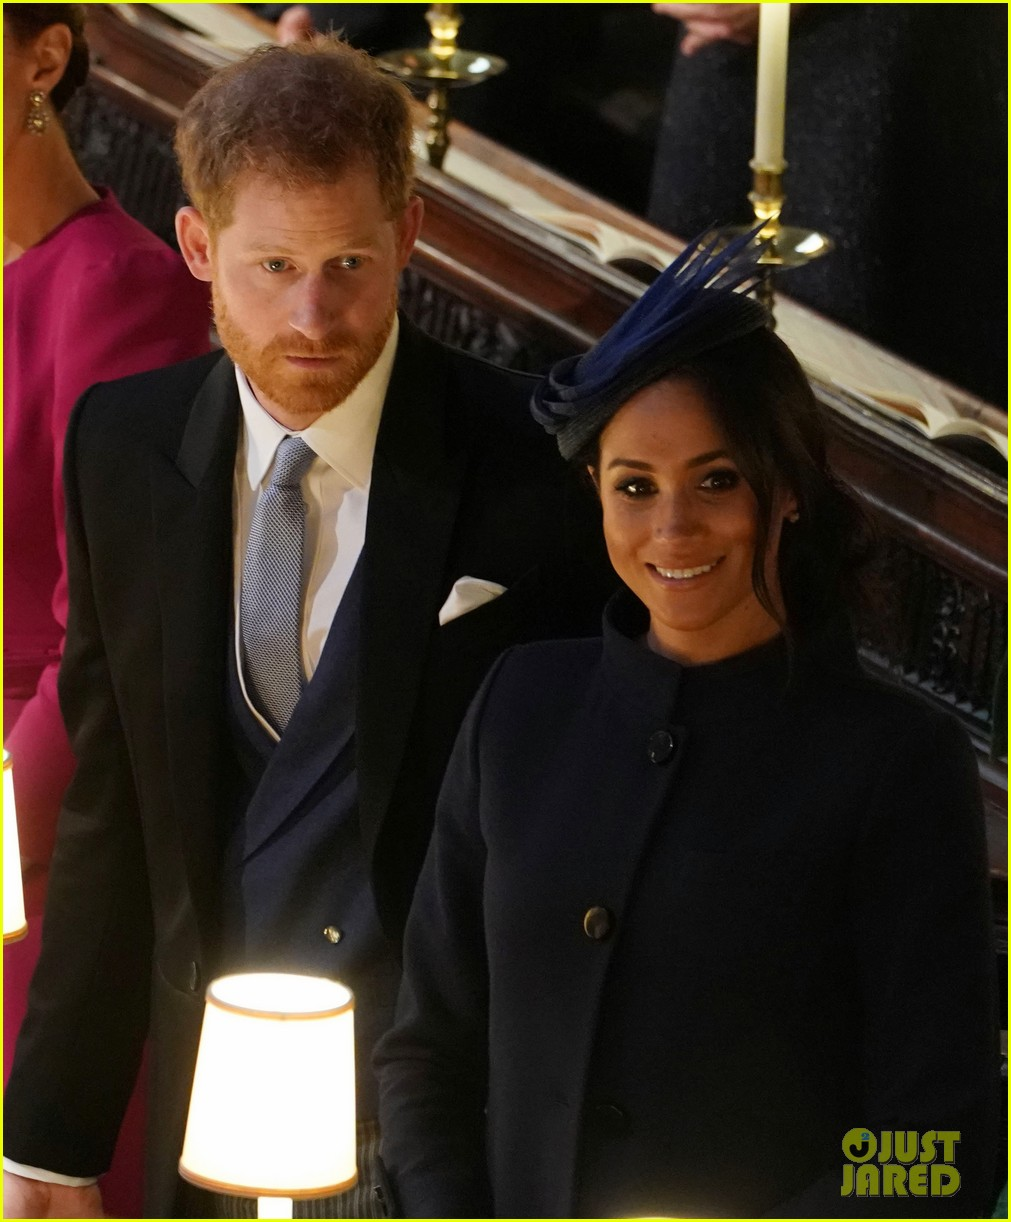 Prince Harry & Meghan Markle Attend His Cousin Princess